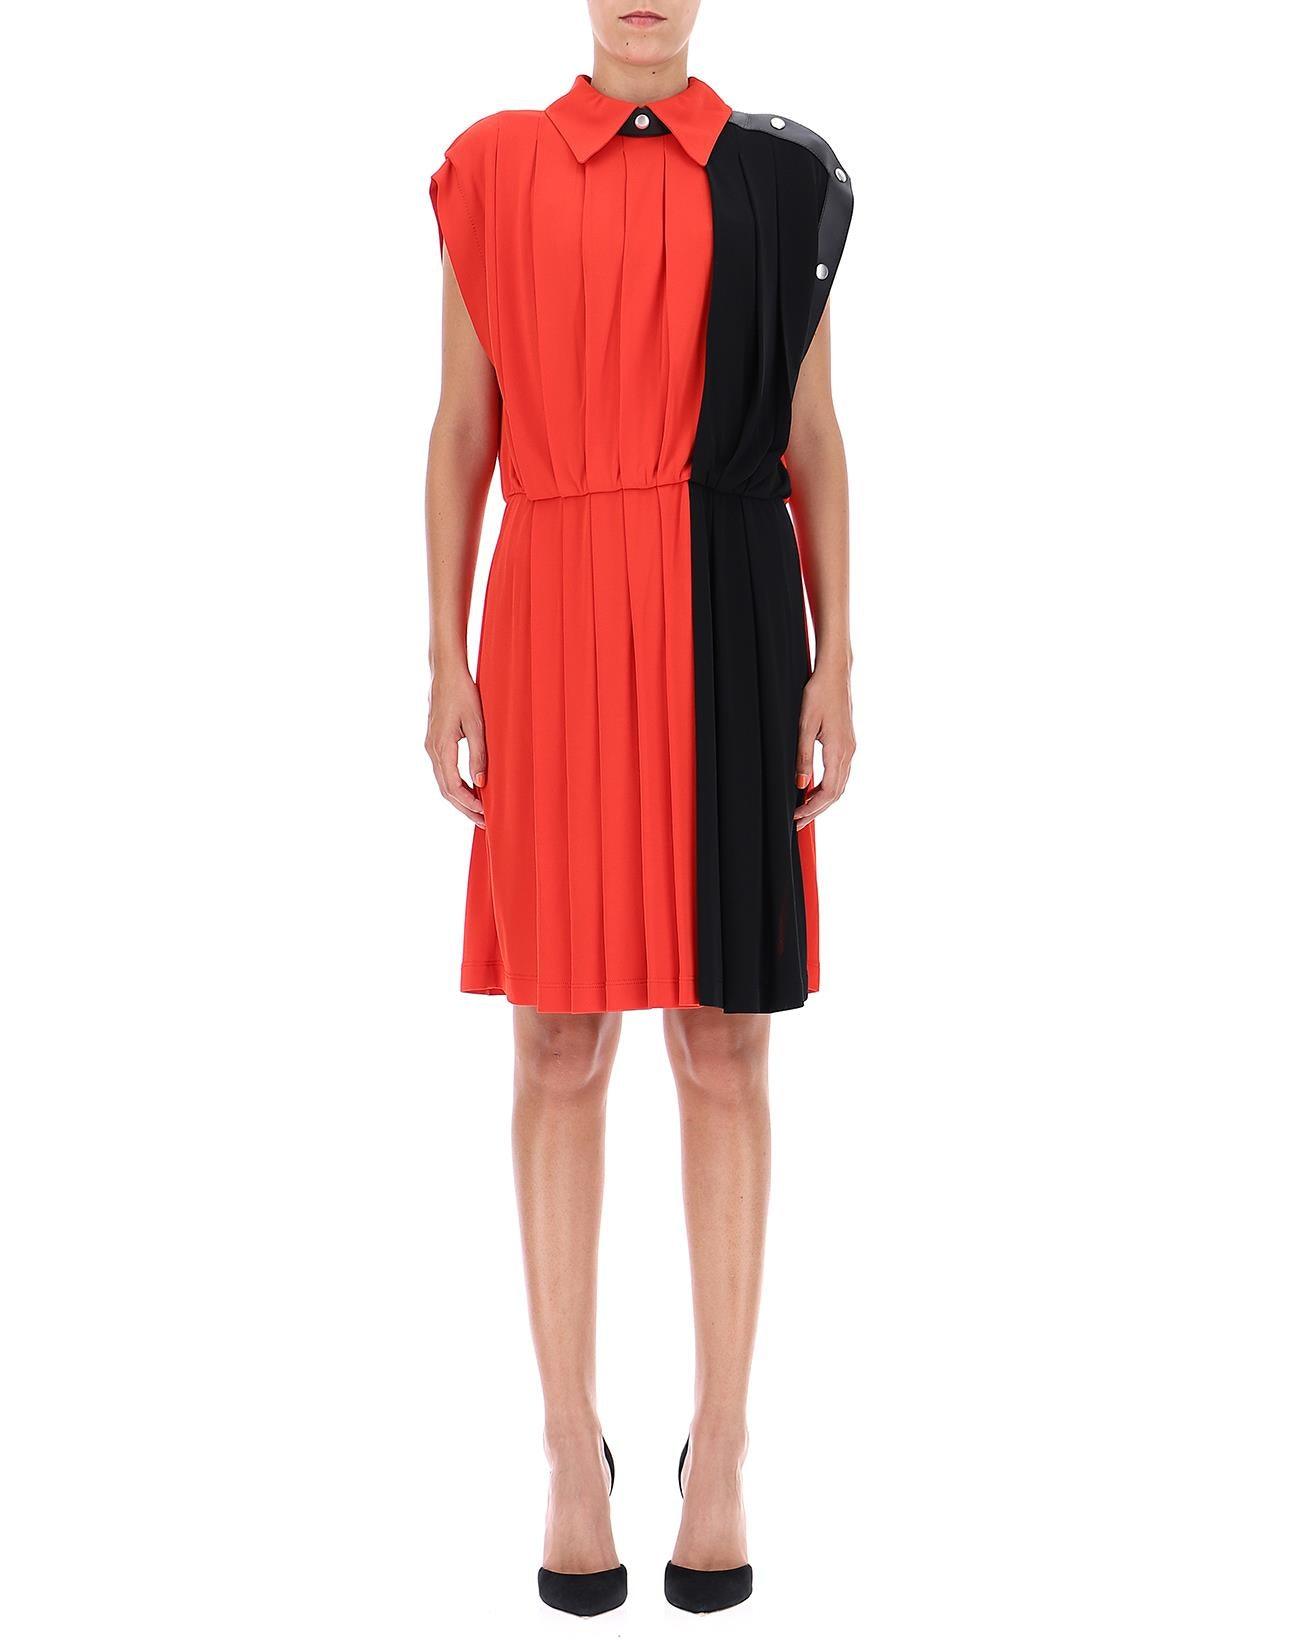 GIVENCHY GIVENCHY ROUND NECK SLEEVELESS DRESS